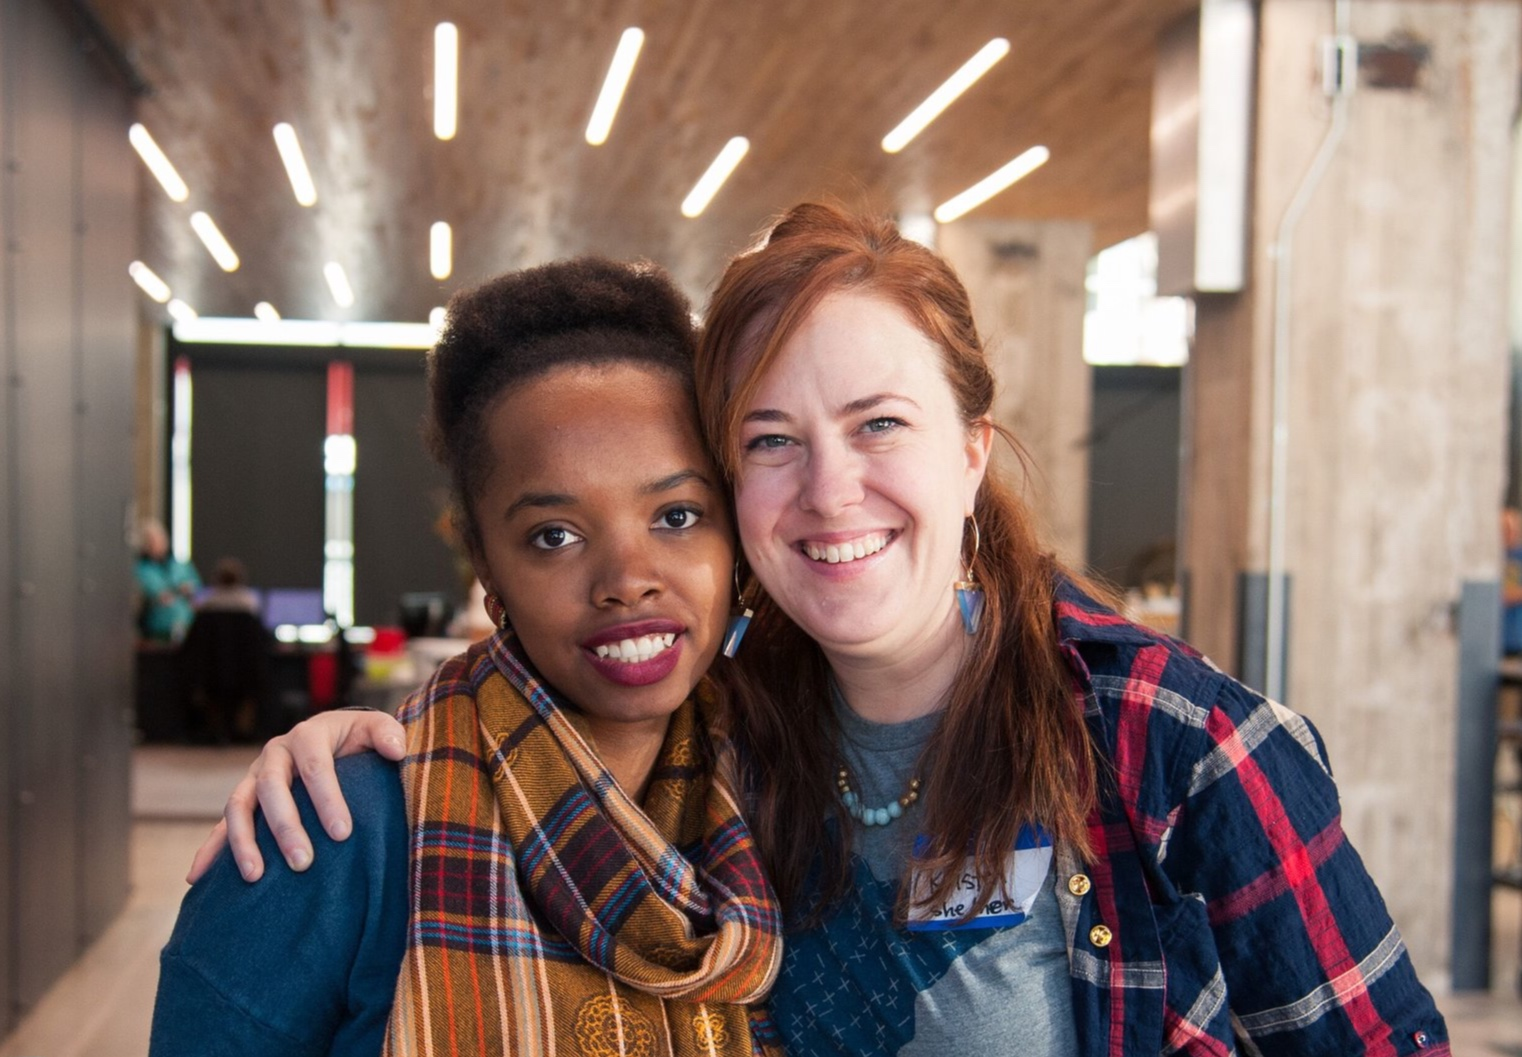 Caroline Karanja, CEO + Founder of 26 Letters, and Kristen Womack, Co-Founder of Hack the Gap